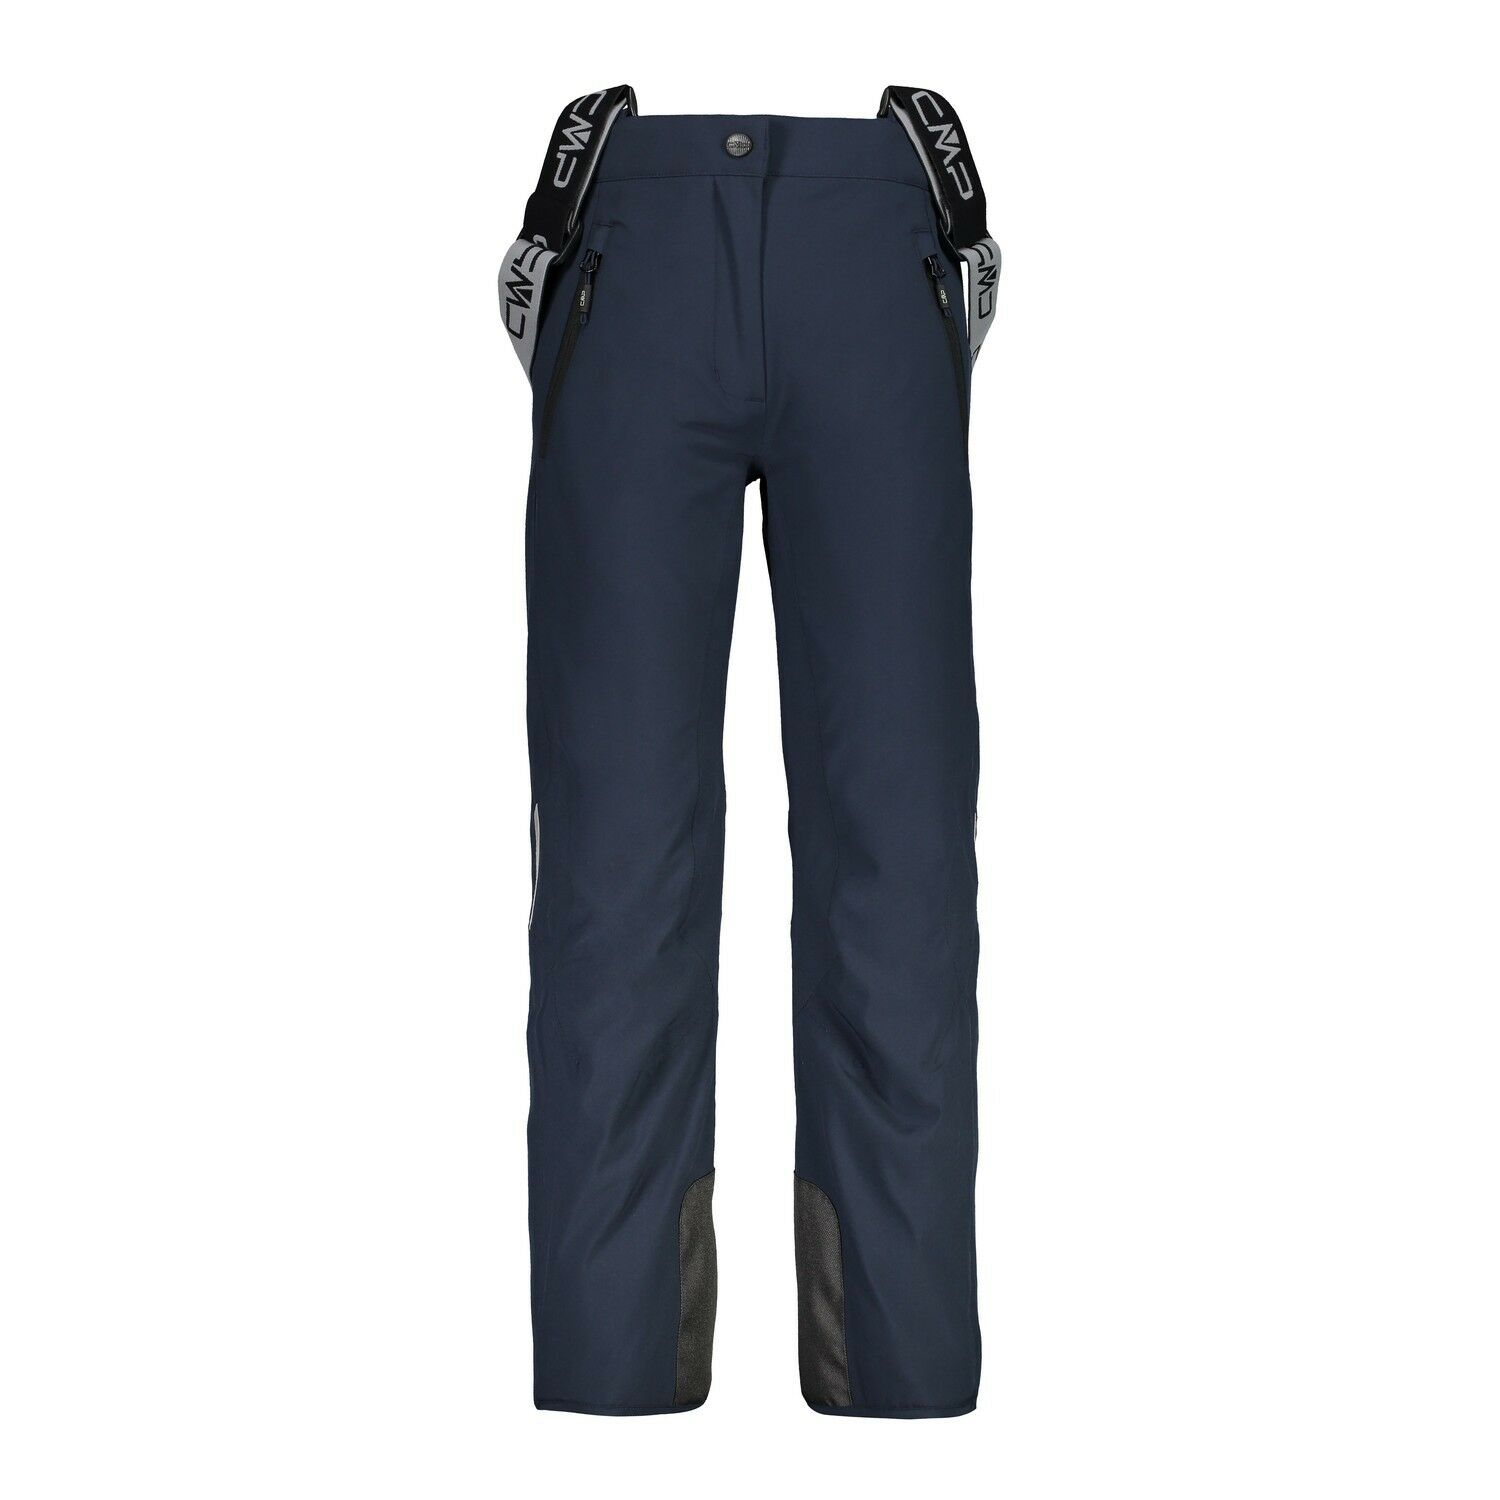 CMP ski snowboard pants girl se dark bluee wind  resistant  high quaity